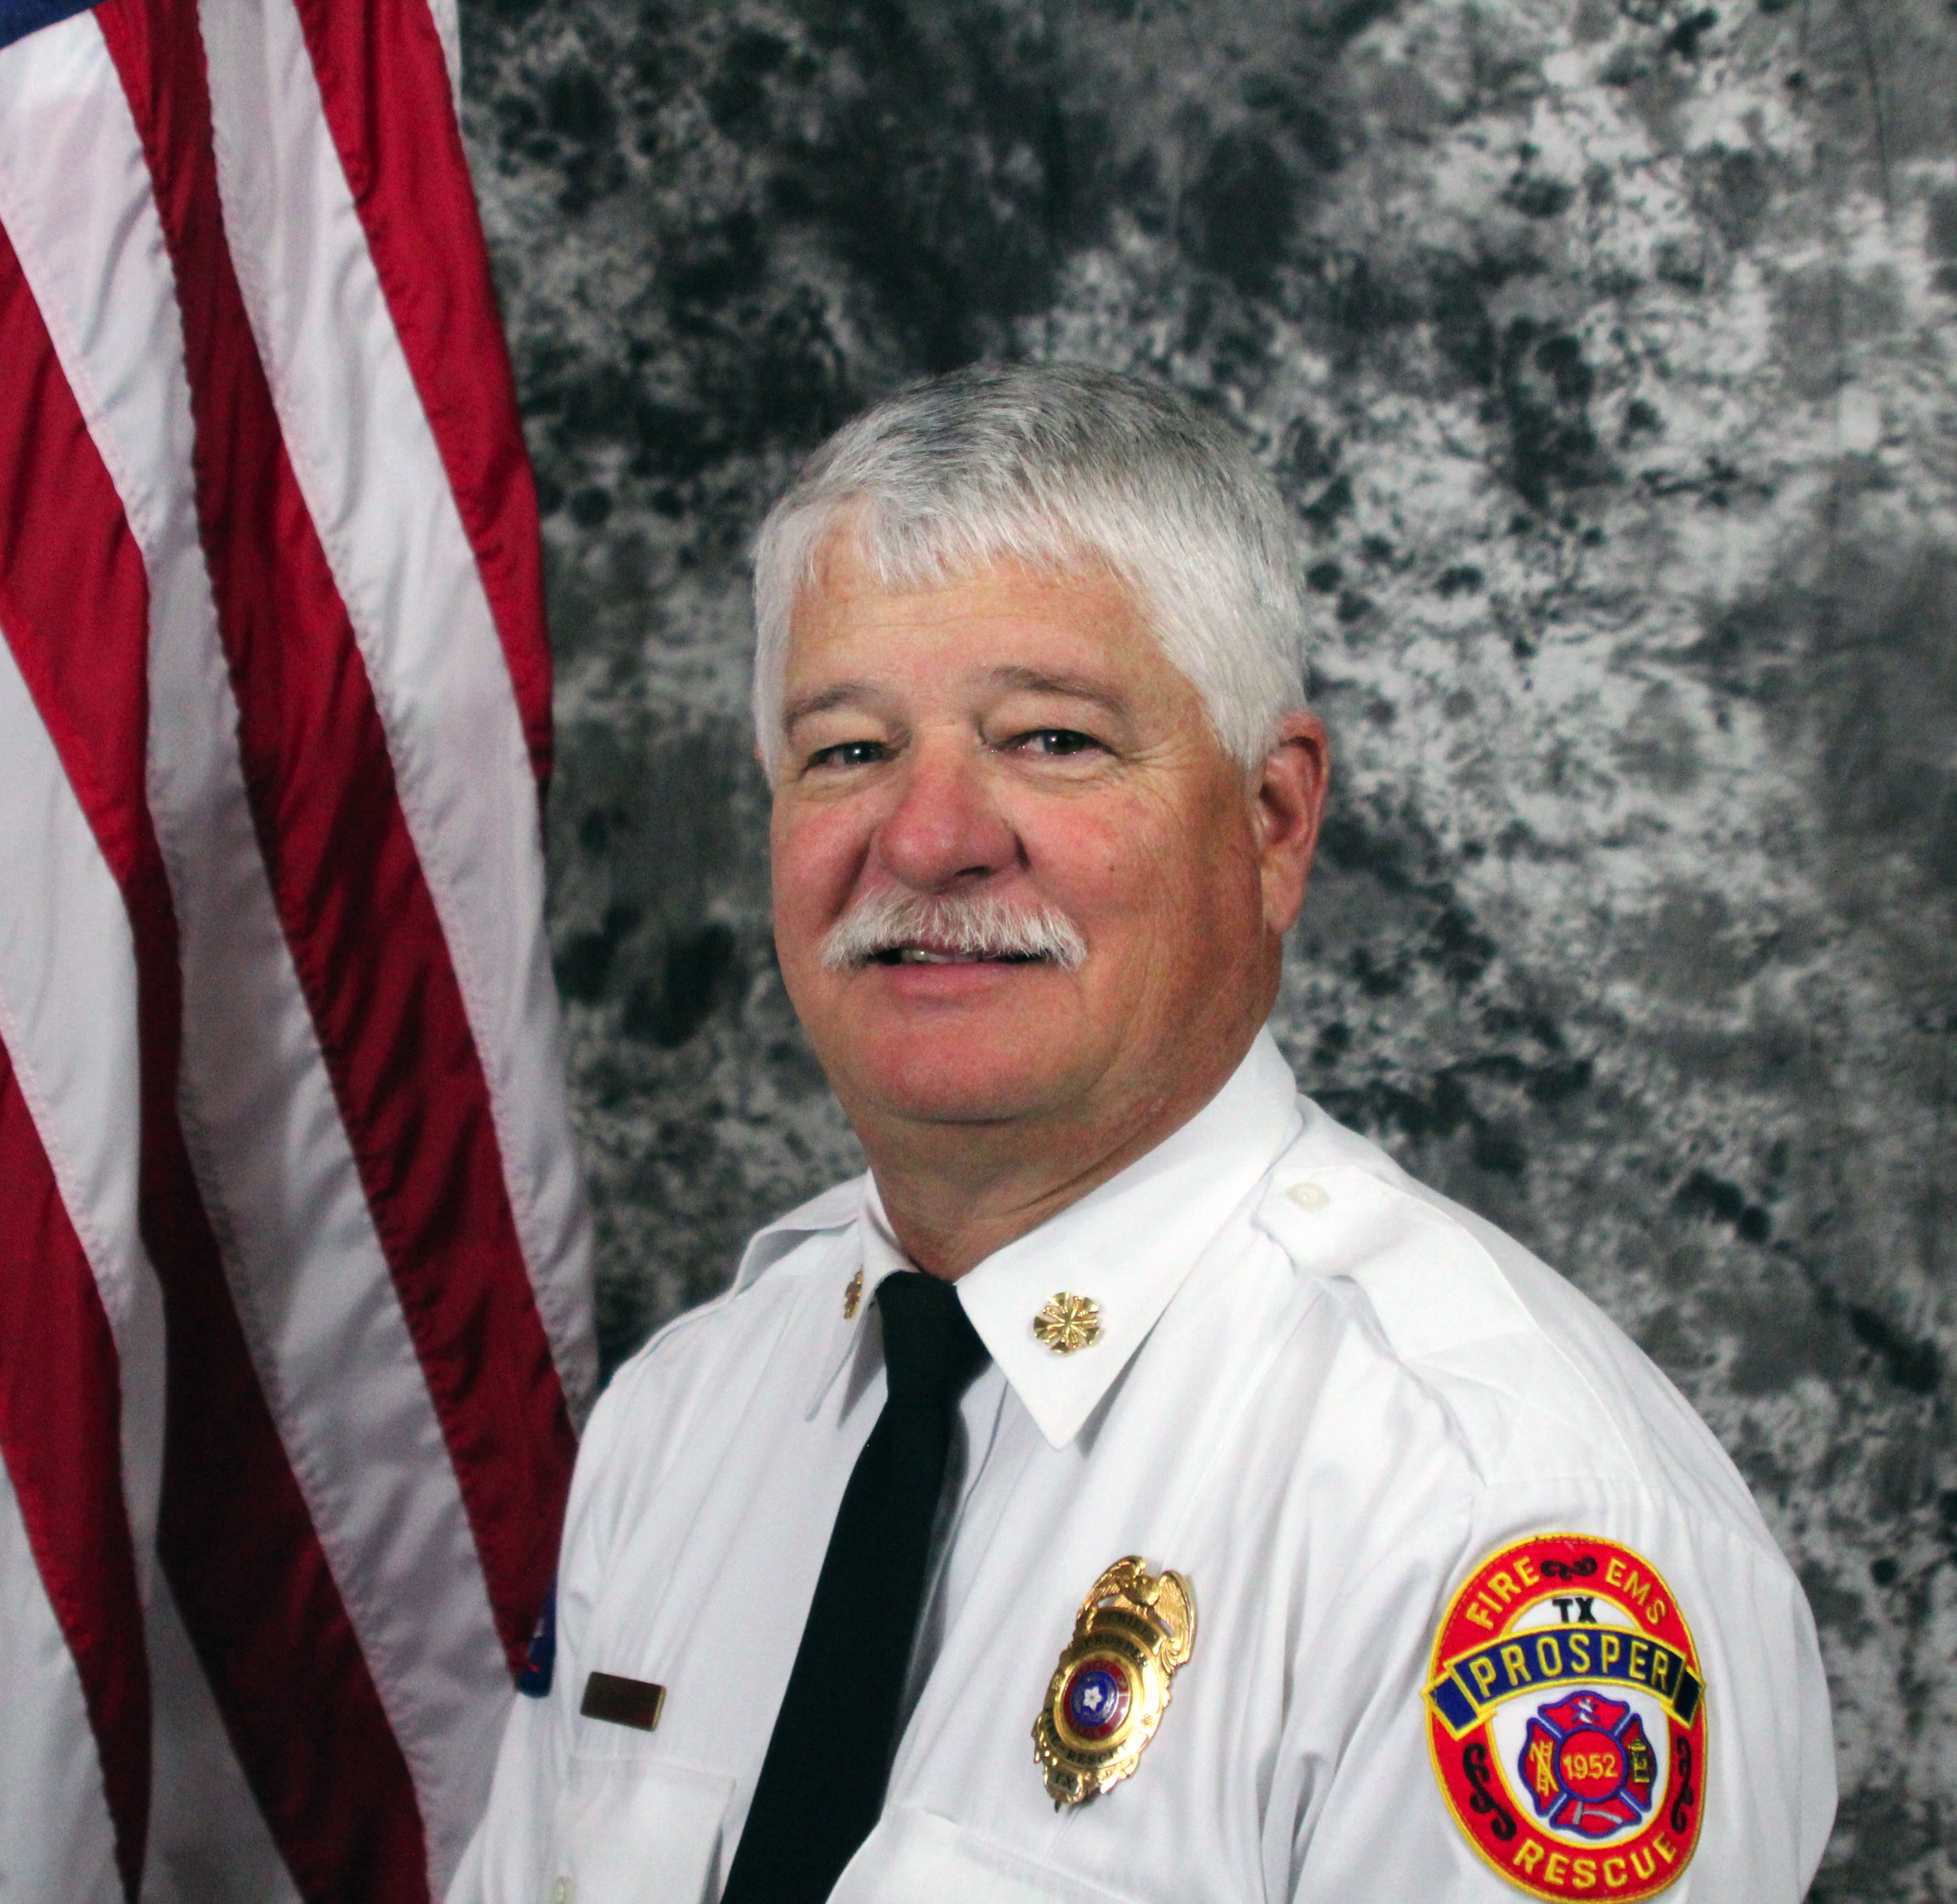 Prosper Fire Chief set to close career on August 31